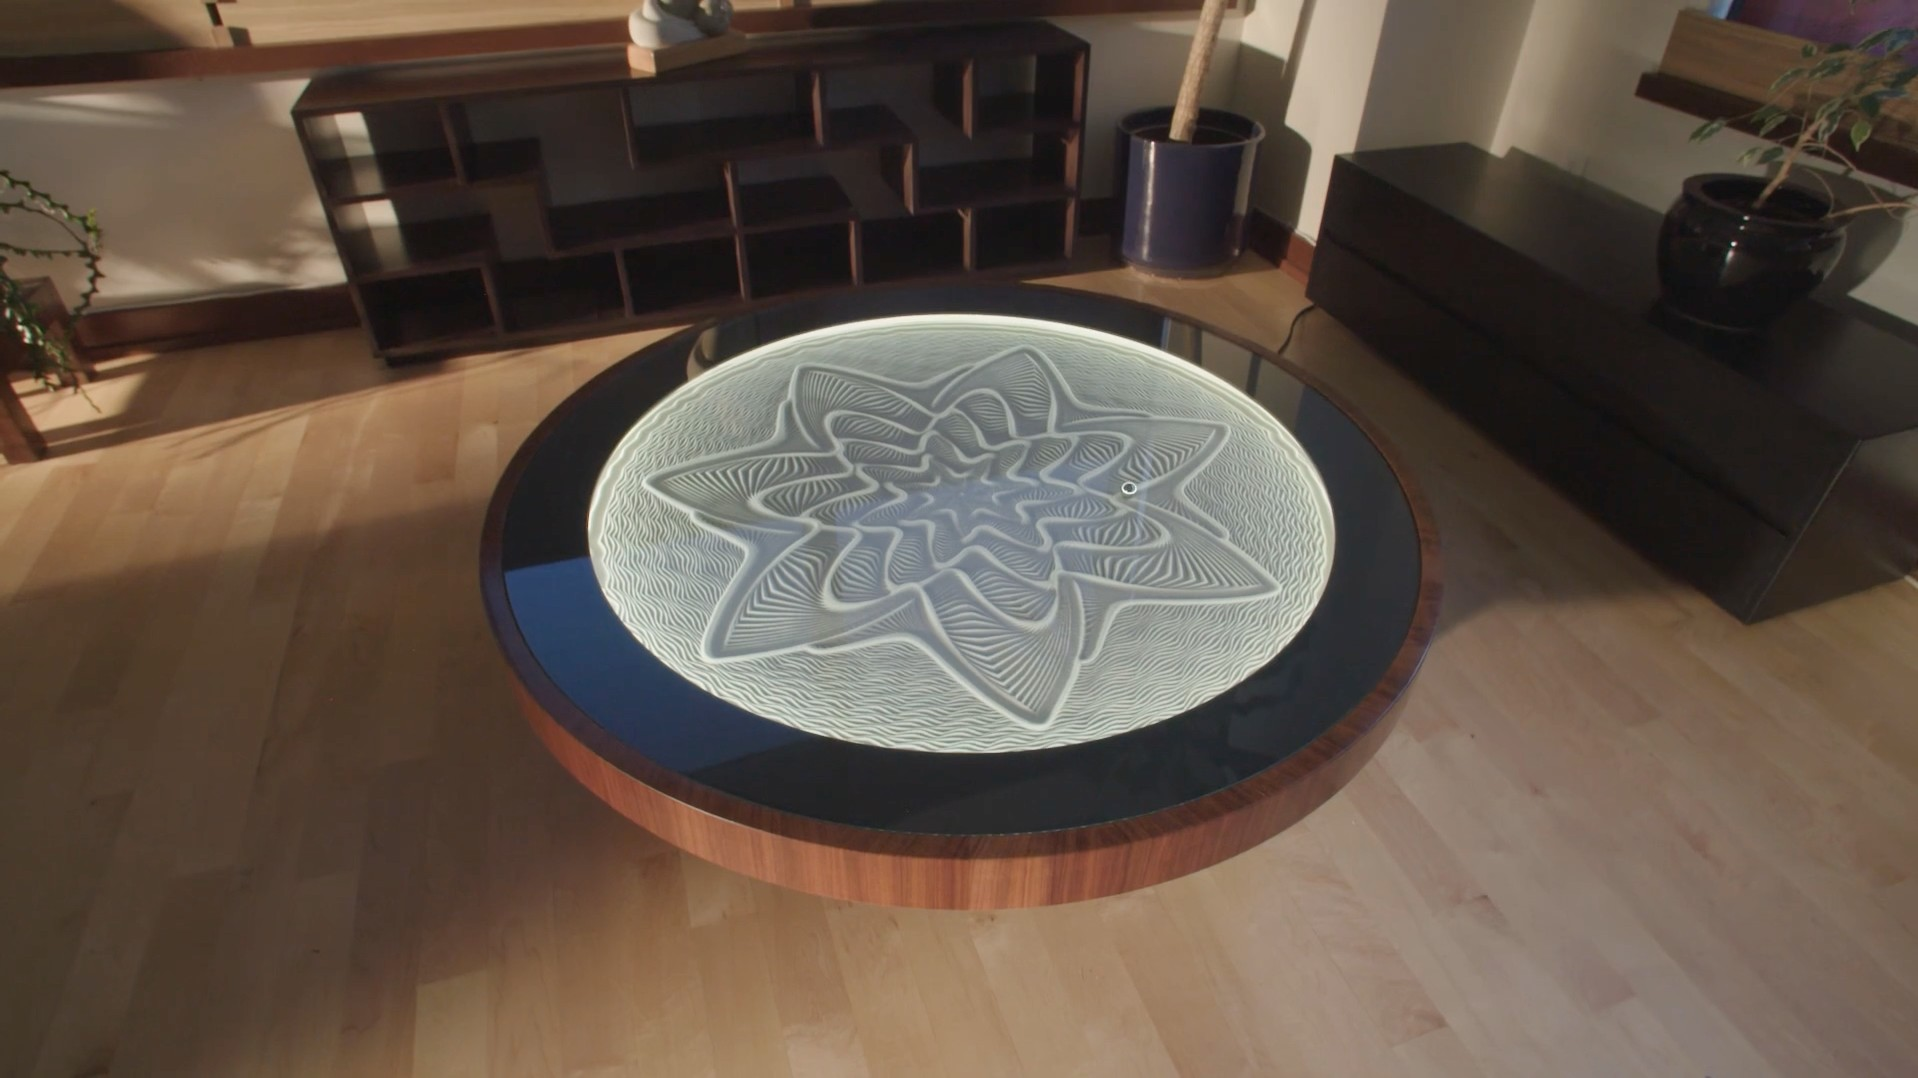 This Zen Coffee Table Creates Gorgeous Patterns Using Magnets and